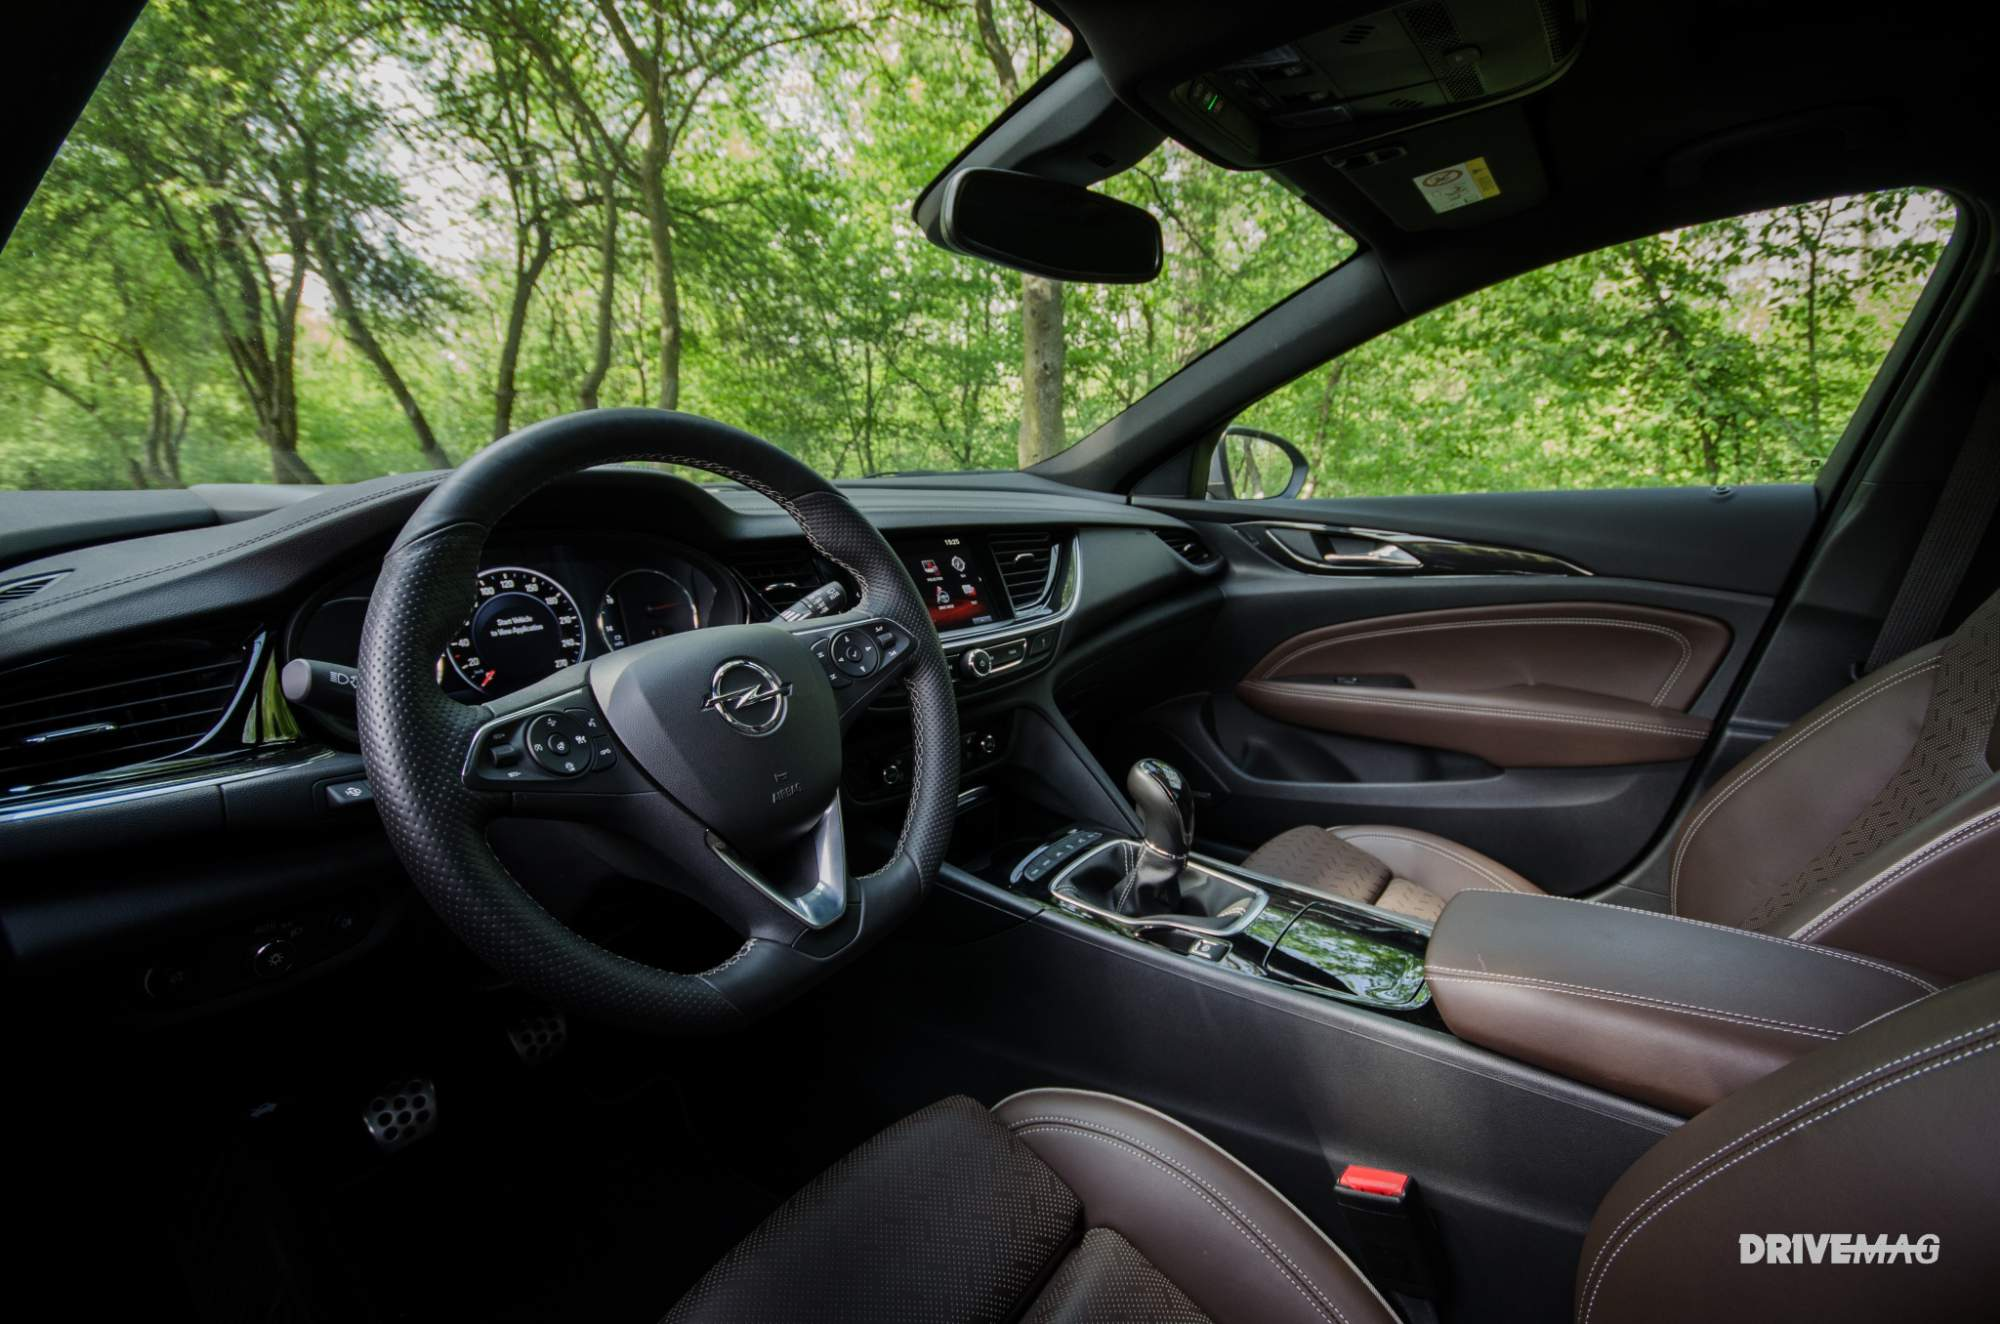 2018 Opel Insignia Grand Sport 2 0 Cdti Awd Dynamic Review The Premium Test